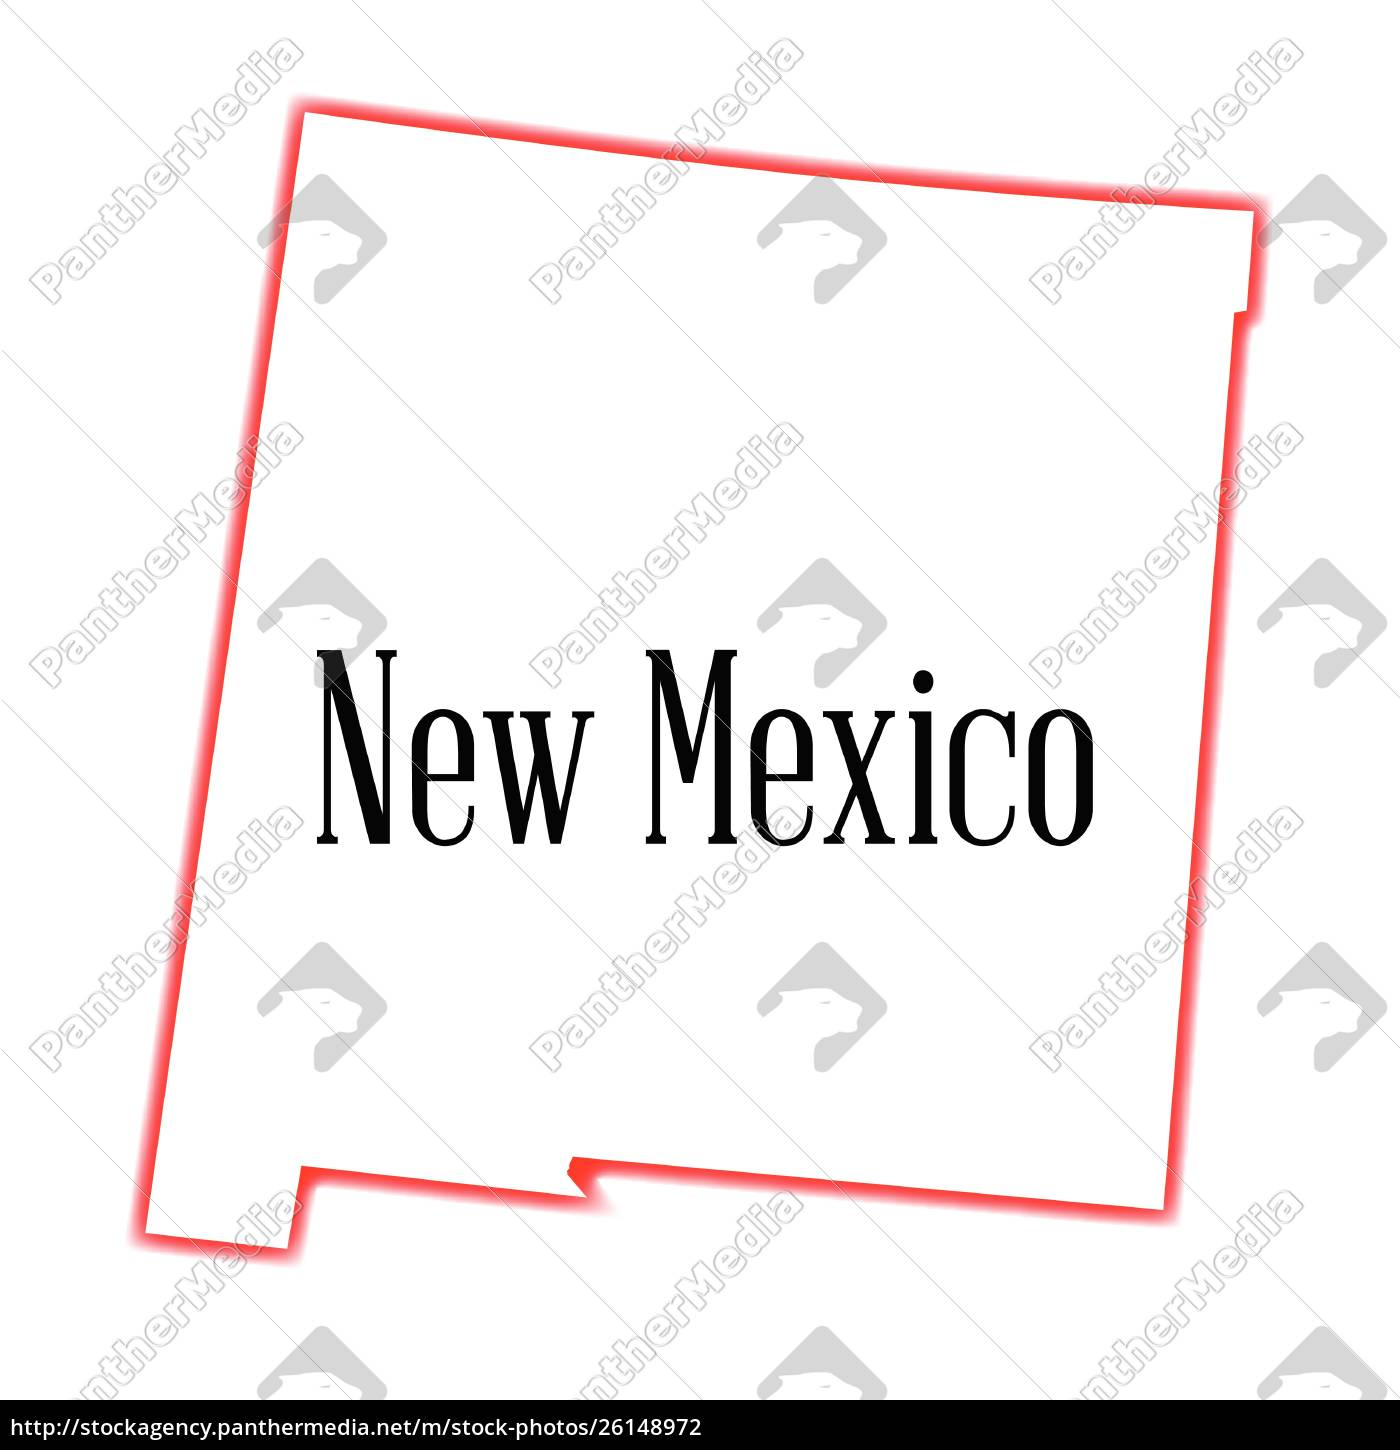 Kort Over New Mexico State Disposition Stockphoto 26148972